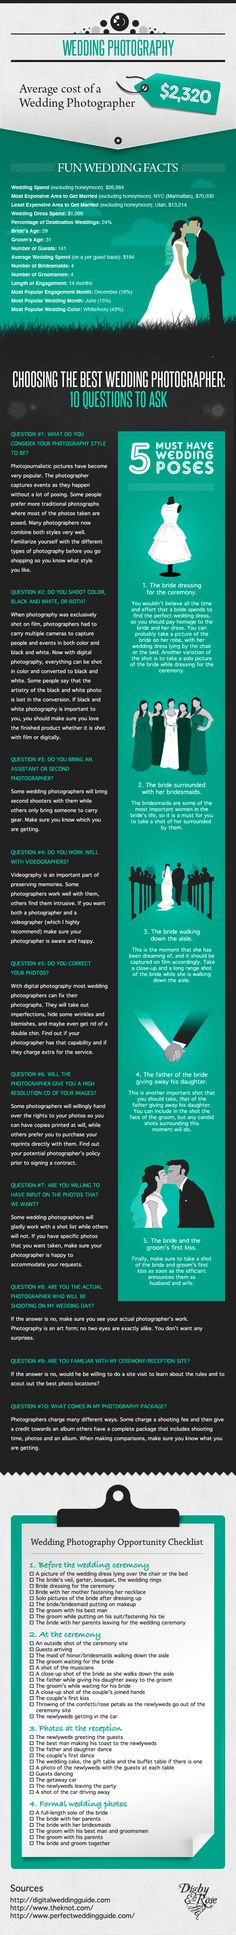 Info-graphic for brides on choosing a wedding photographer.